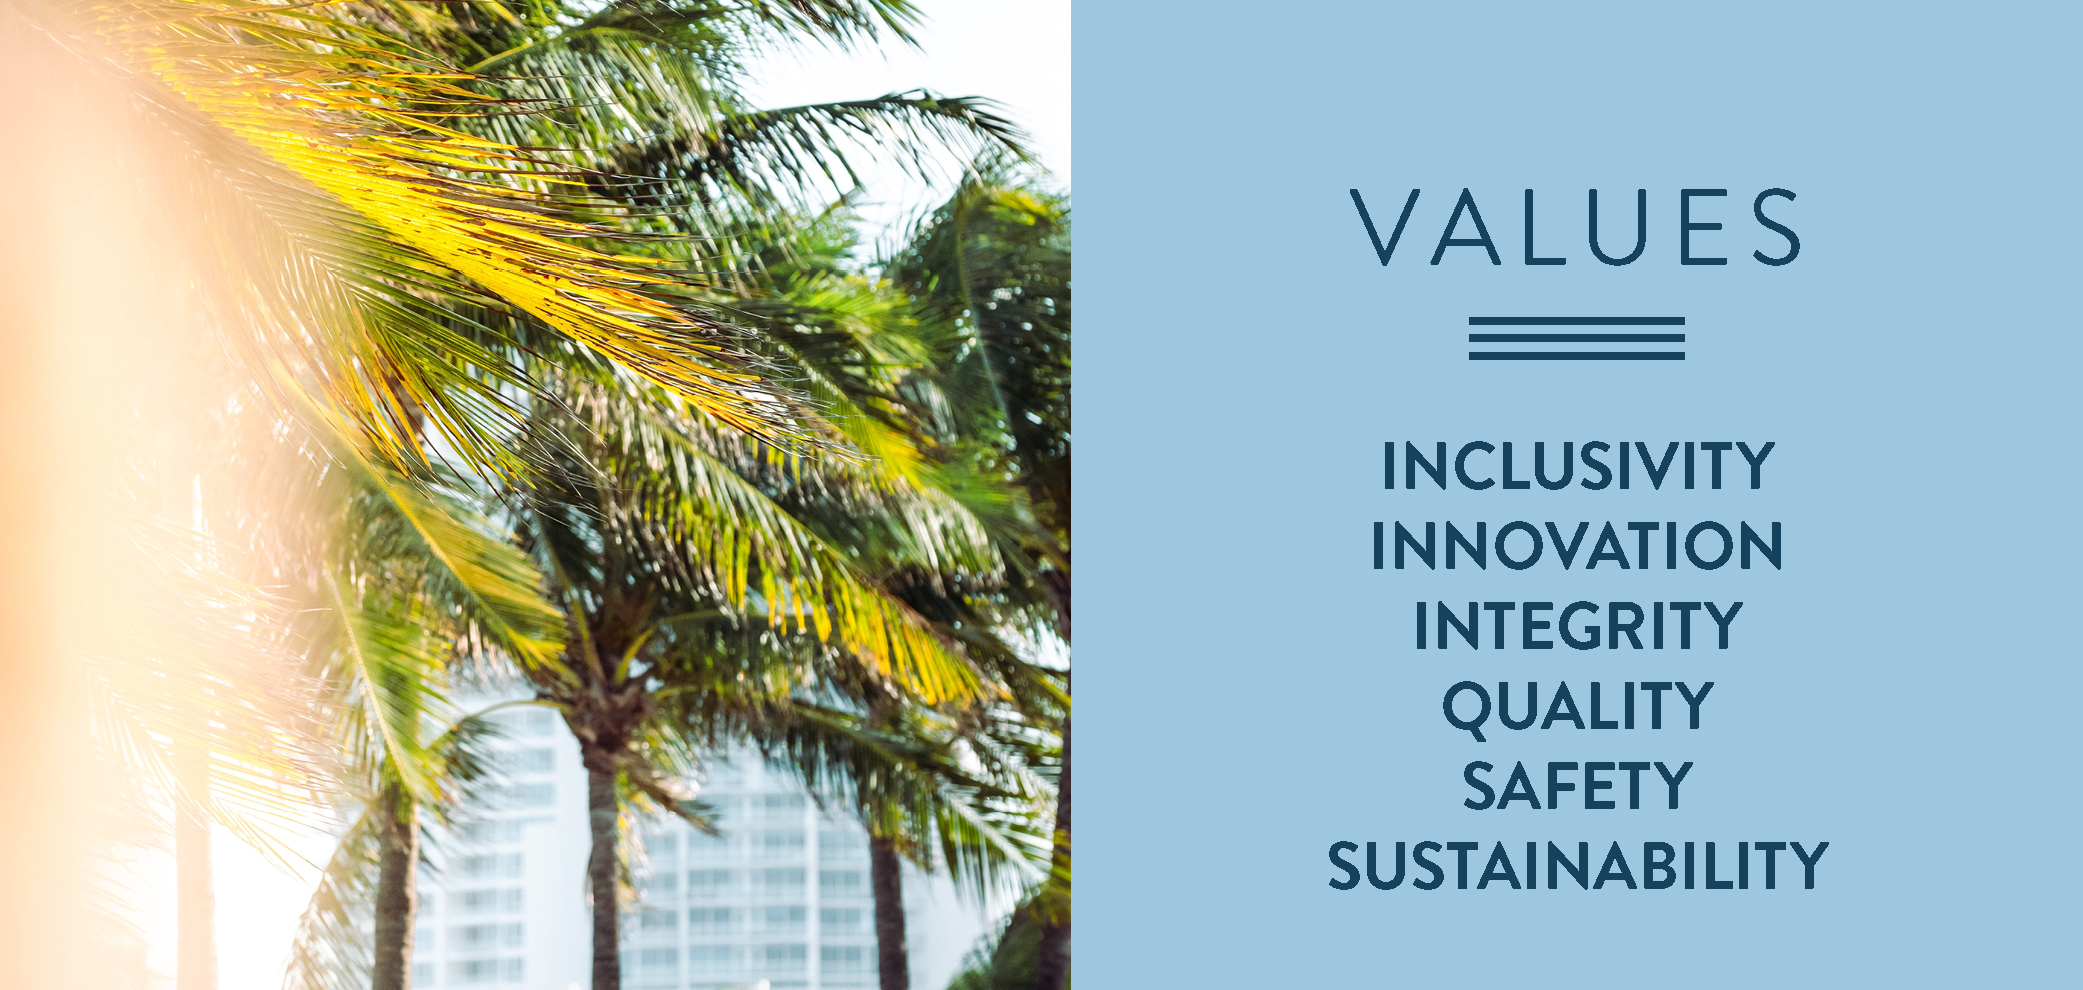 Values. integrity, safety, innovation quality, sustainability, inclusivity